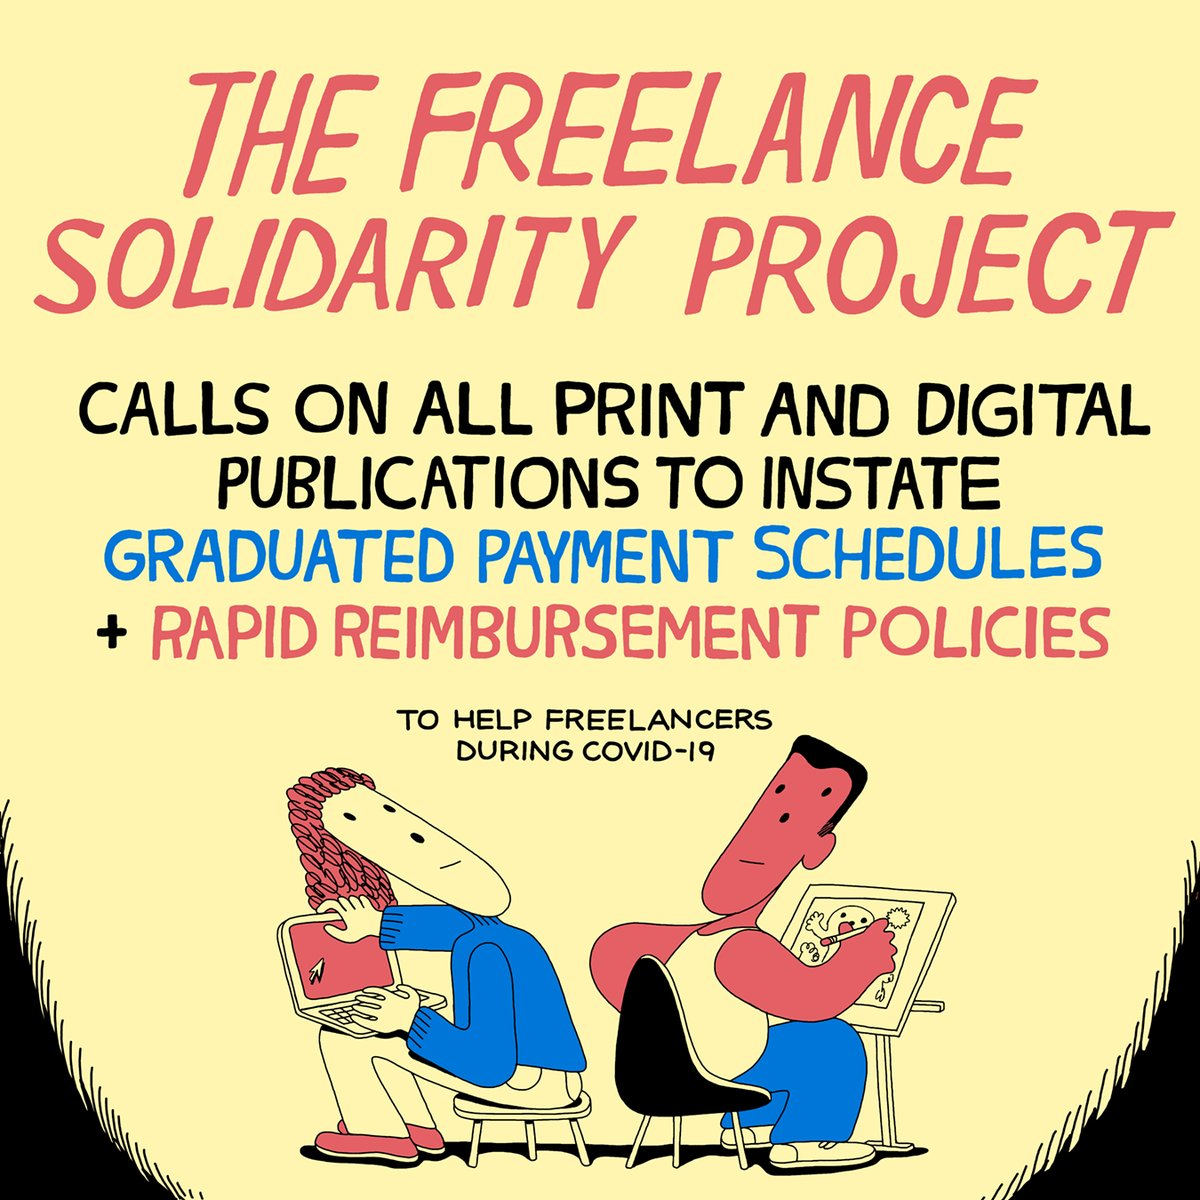 Today we're calling on all print and digital publications to instate graduated payment schedules and rapid reimbursement policies to help freelancers during the pandemic. Here's what that means: https://t.co/XXUmq2KFqg https://t.co/8guxV9QFul